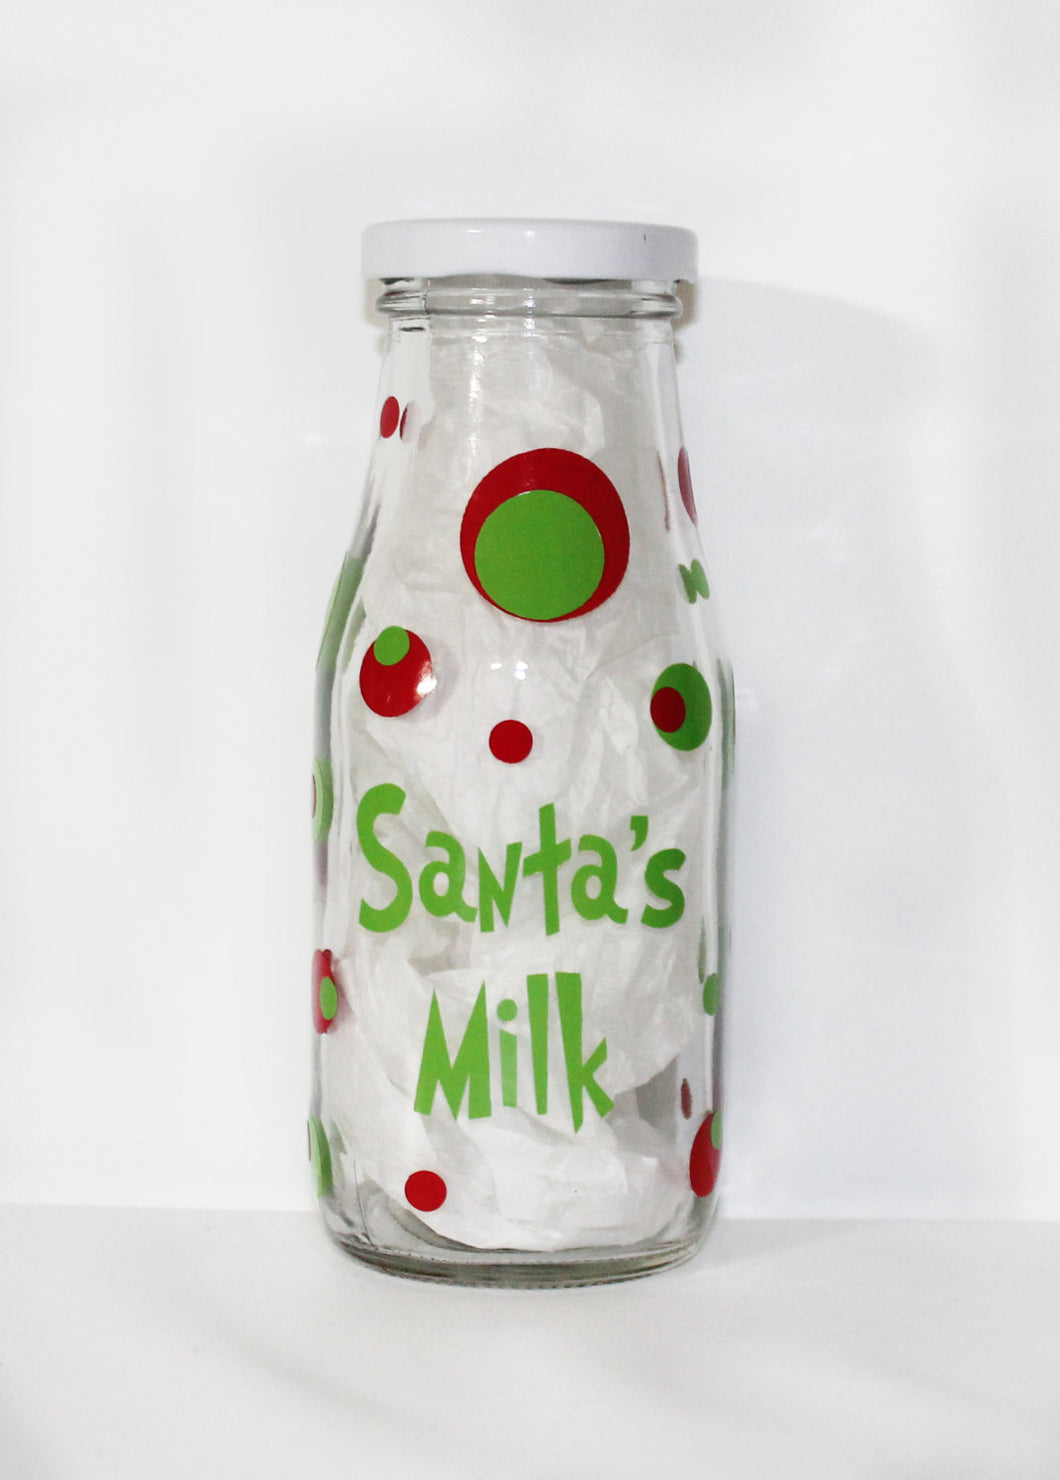 Personalized Milk Jug - Glass - Home Decor - Gift - Holiday - Santa - Reindeer - Carrots - Drink - Children - Kids - Made to Match